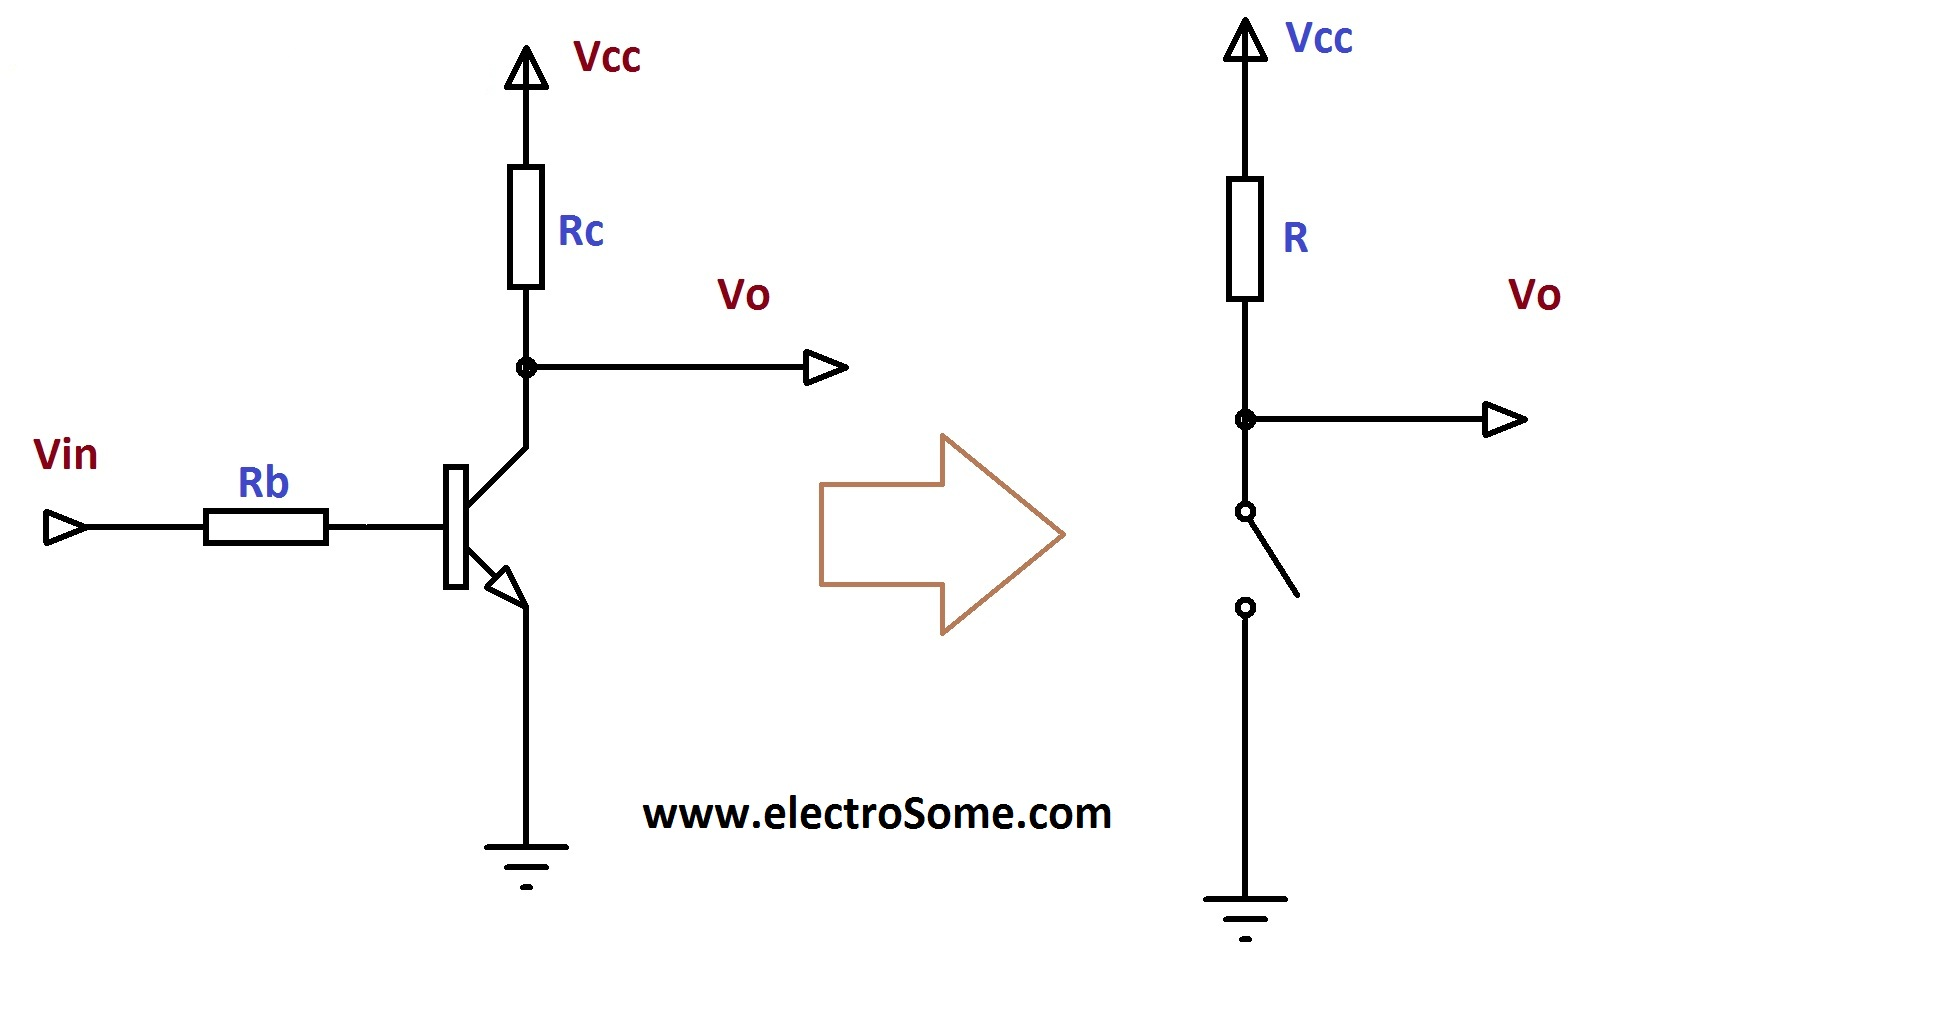 Transistor As A Switch Tutorial Switches And Relays Electronic Circuits Diagram Circuit